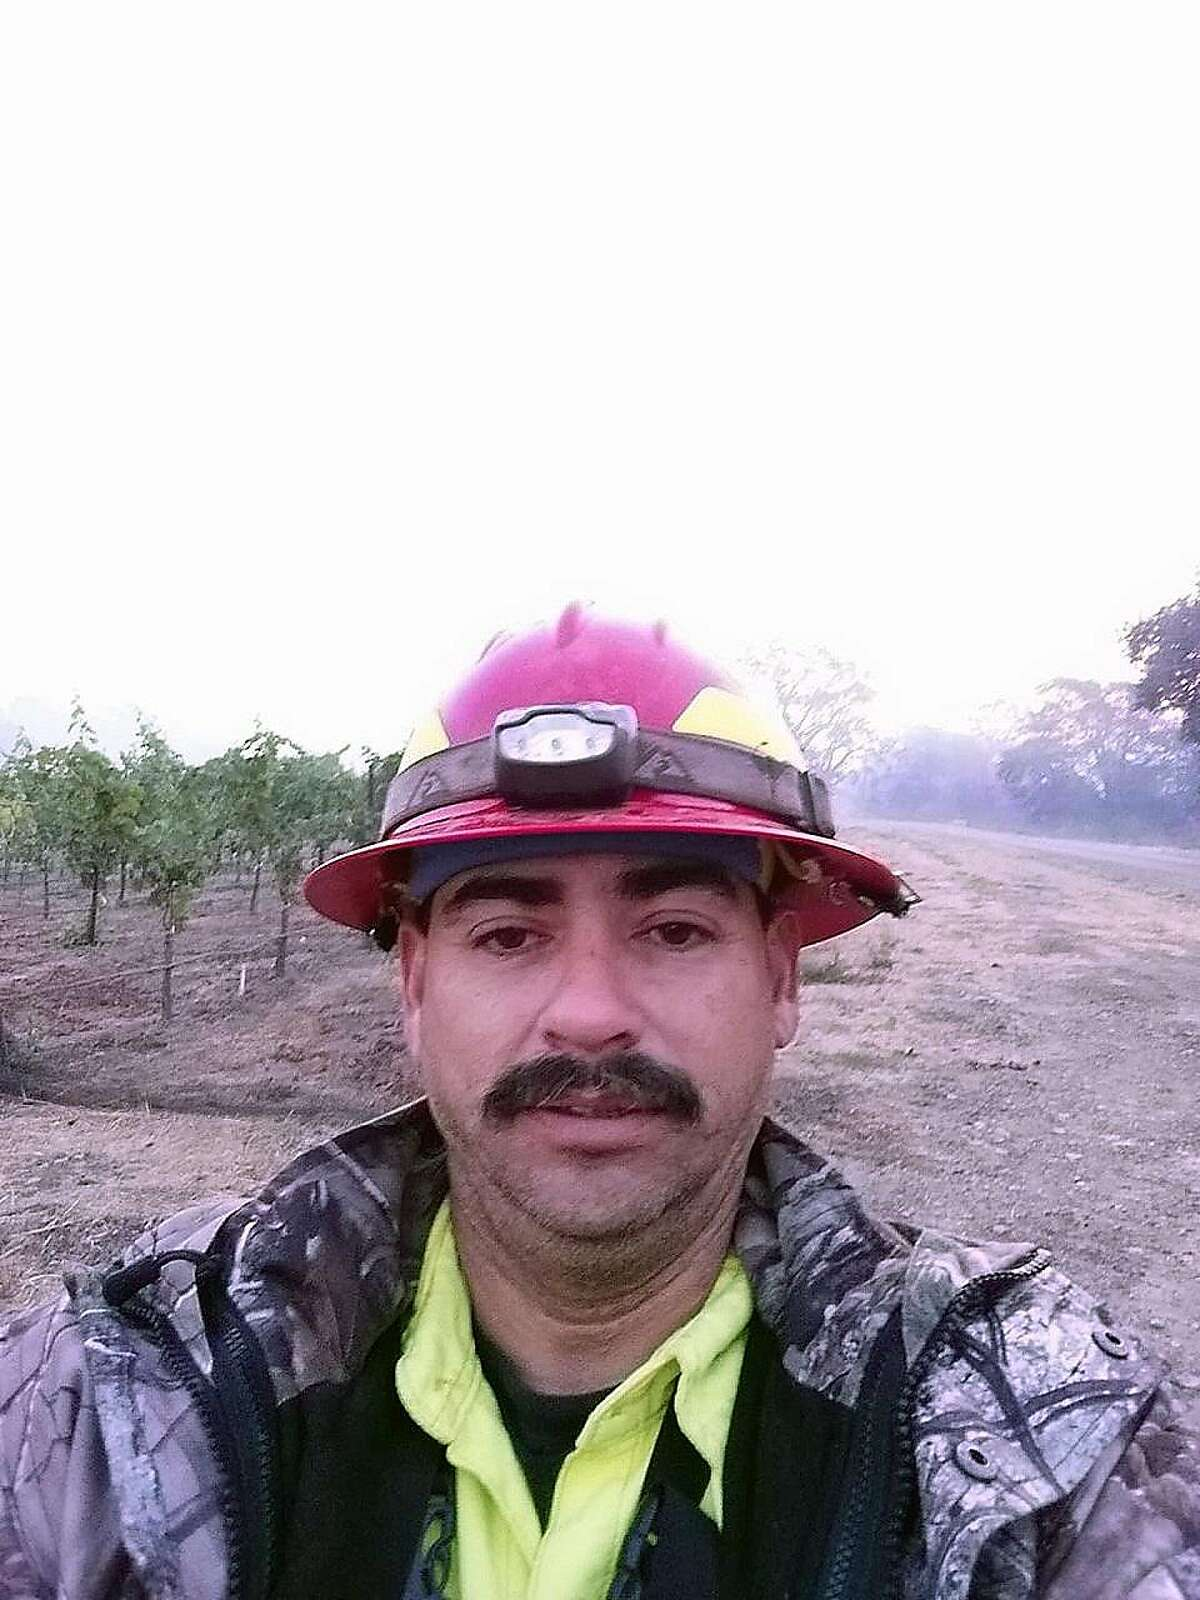 Garrett Paiz, 38, died when the private firefighting water truck he was driving careened off the steep Oakville Grade road in Napa County near Highway 29 around 7 a.m. on Monday October 16, 2017. Officials said it wasn�t clear what caused the accident, but fatigue from long hours of working the fire may have been a factor. A selfie taken on Sunday, October 15, 2017.